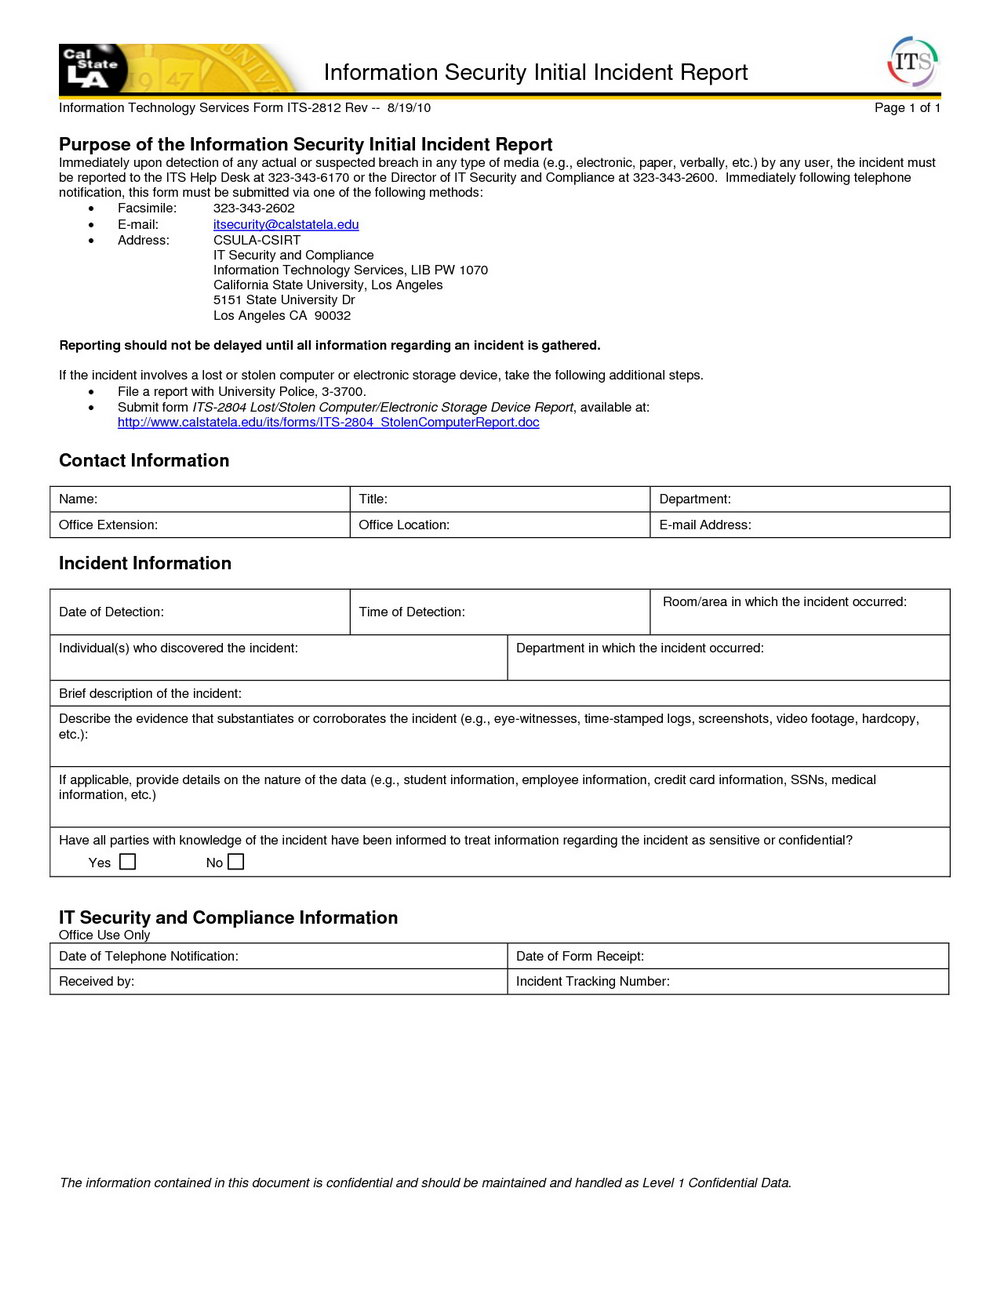 Information Security Incident Report Template